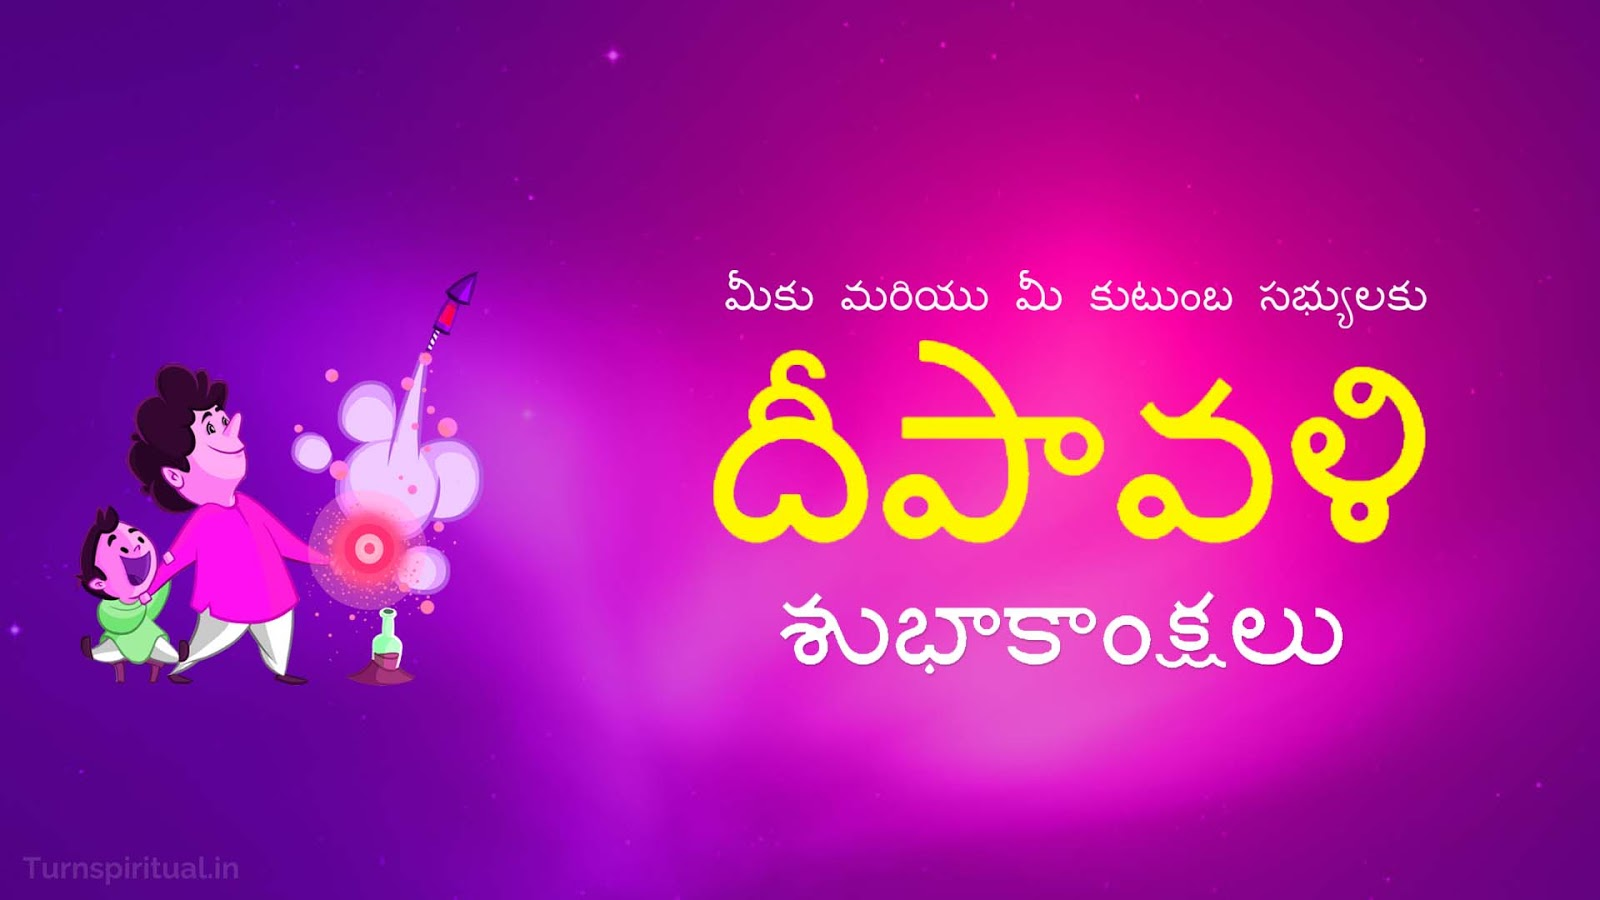 Happy Deepawali Wishes in Telugu